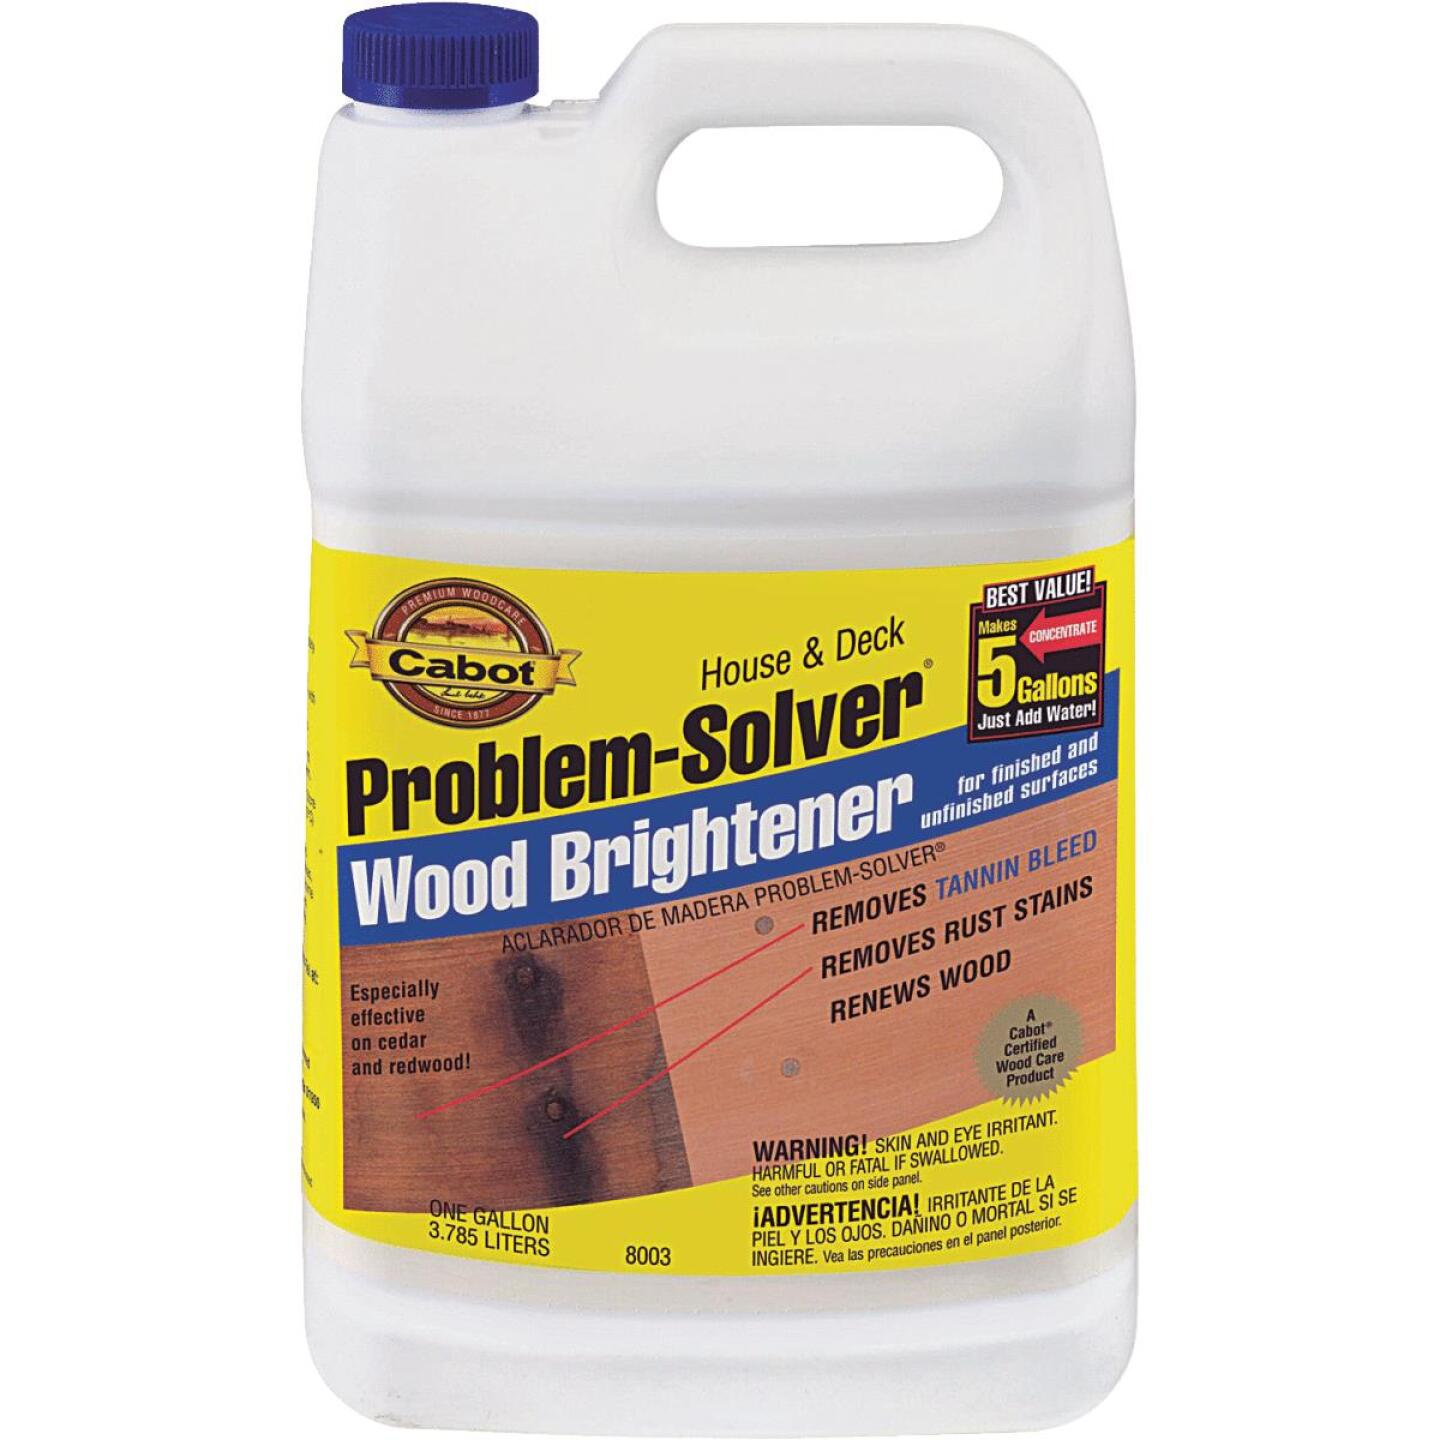 Cabot Problem-Solver 1 Gal. House & Deck Wood Brightener Image 1